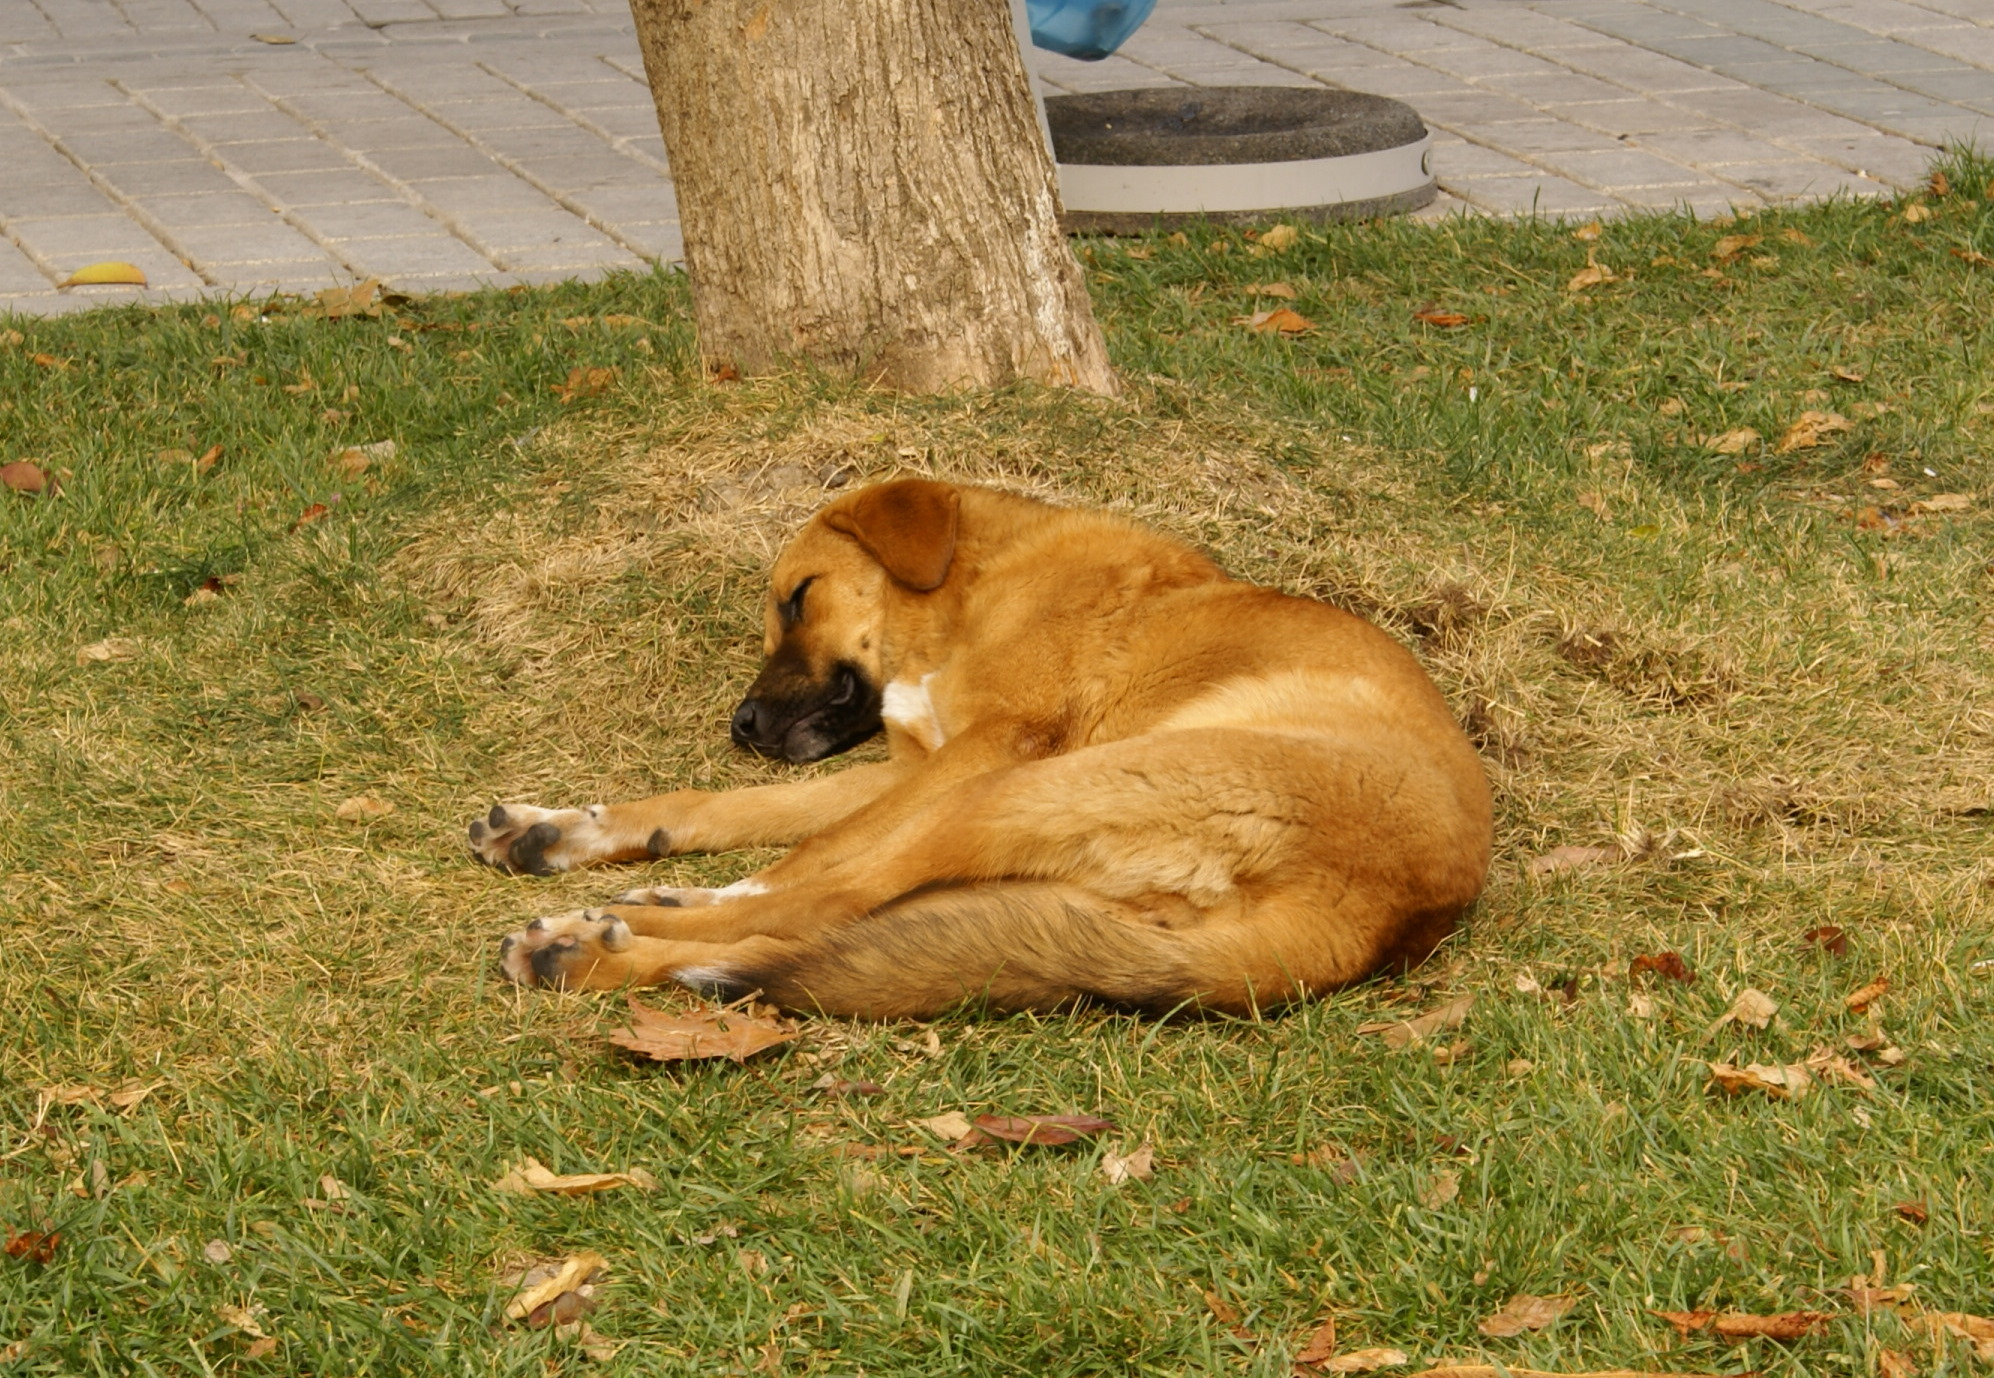 A common sight on the streets of Istanbul: a stray dog